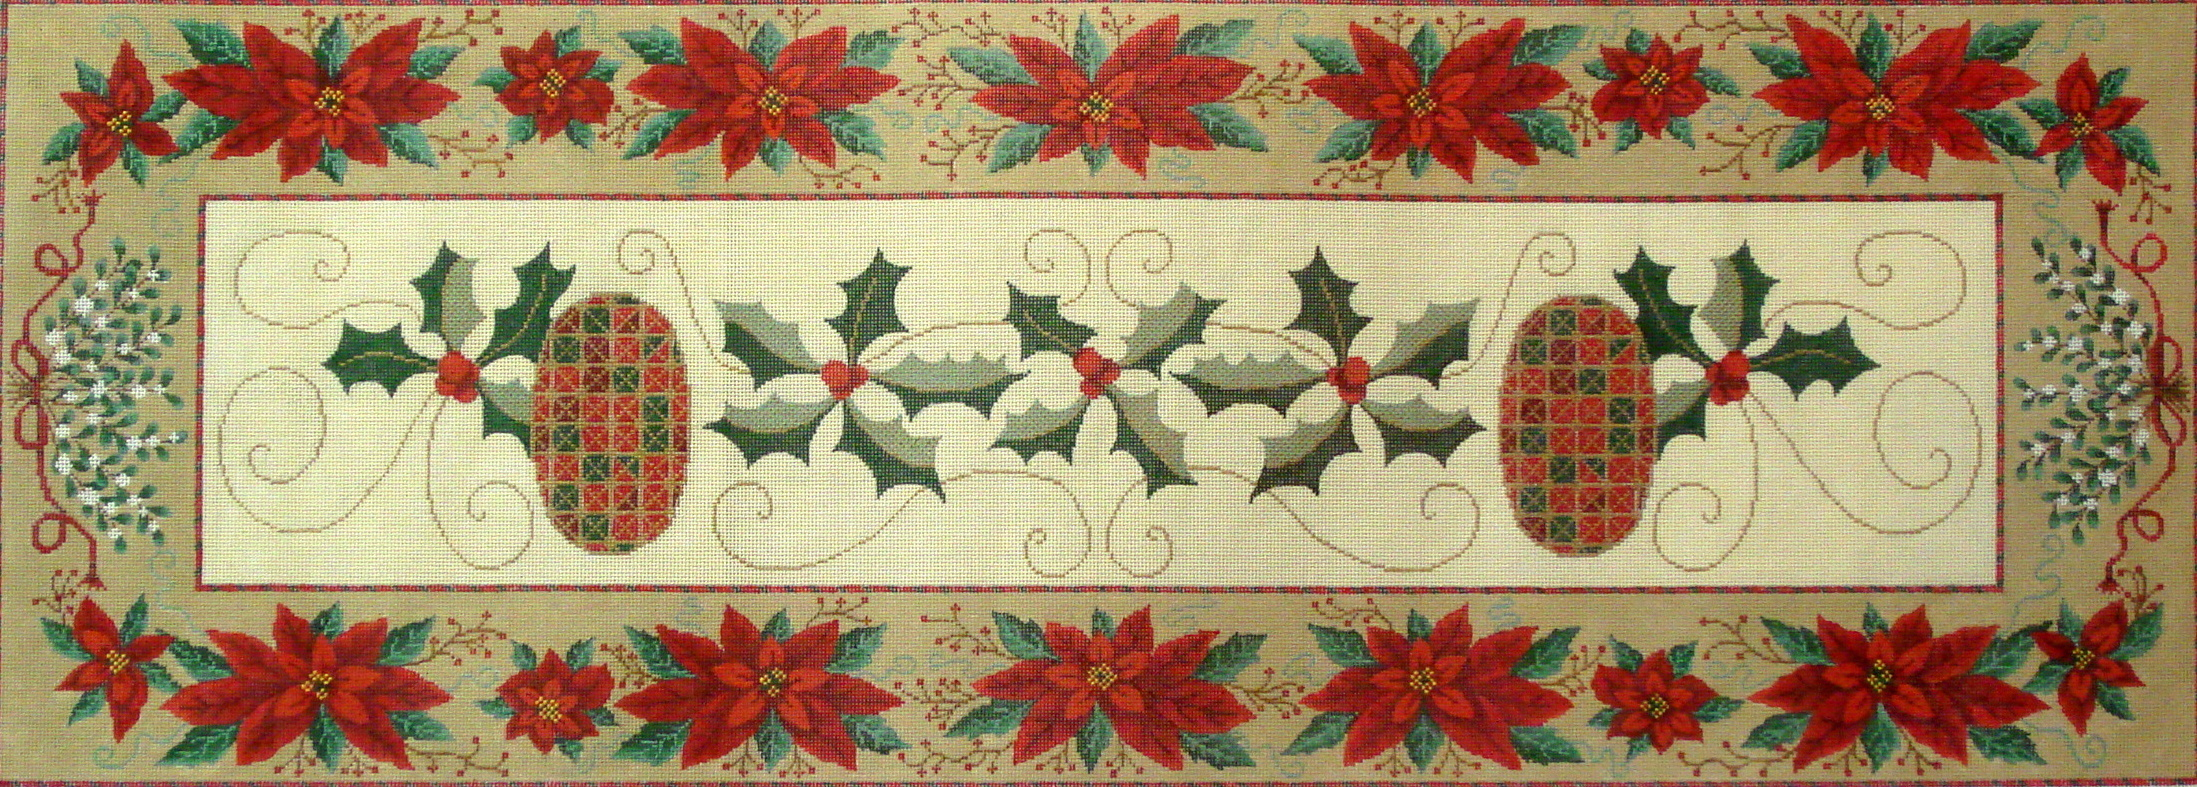 Christmas Table Runner   (A Needlepoint Alley canvas exclusive) 18*NPA